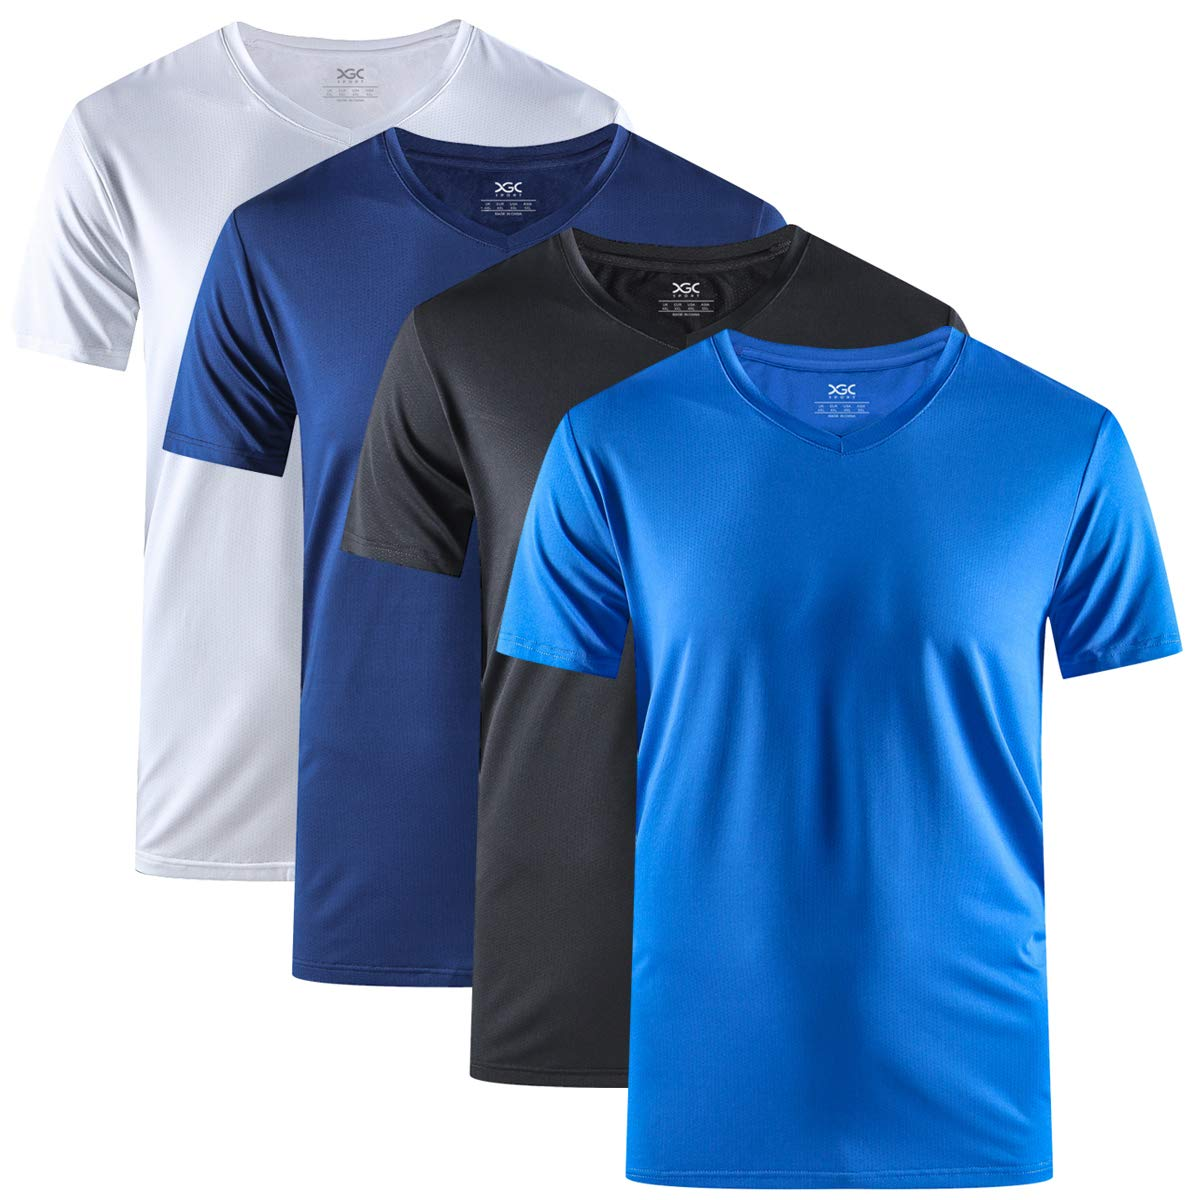 XGC Men's Sport T-Shirt Quick Dry Short Sleeve Training Fitness Tee Shirt 1 to 4 Pack